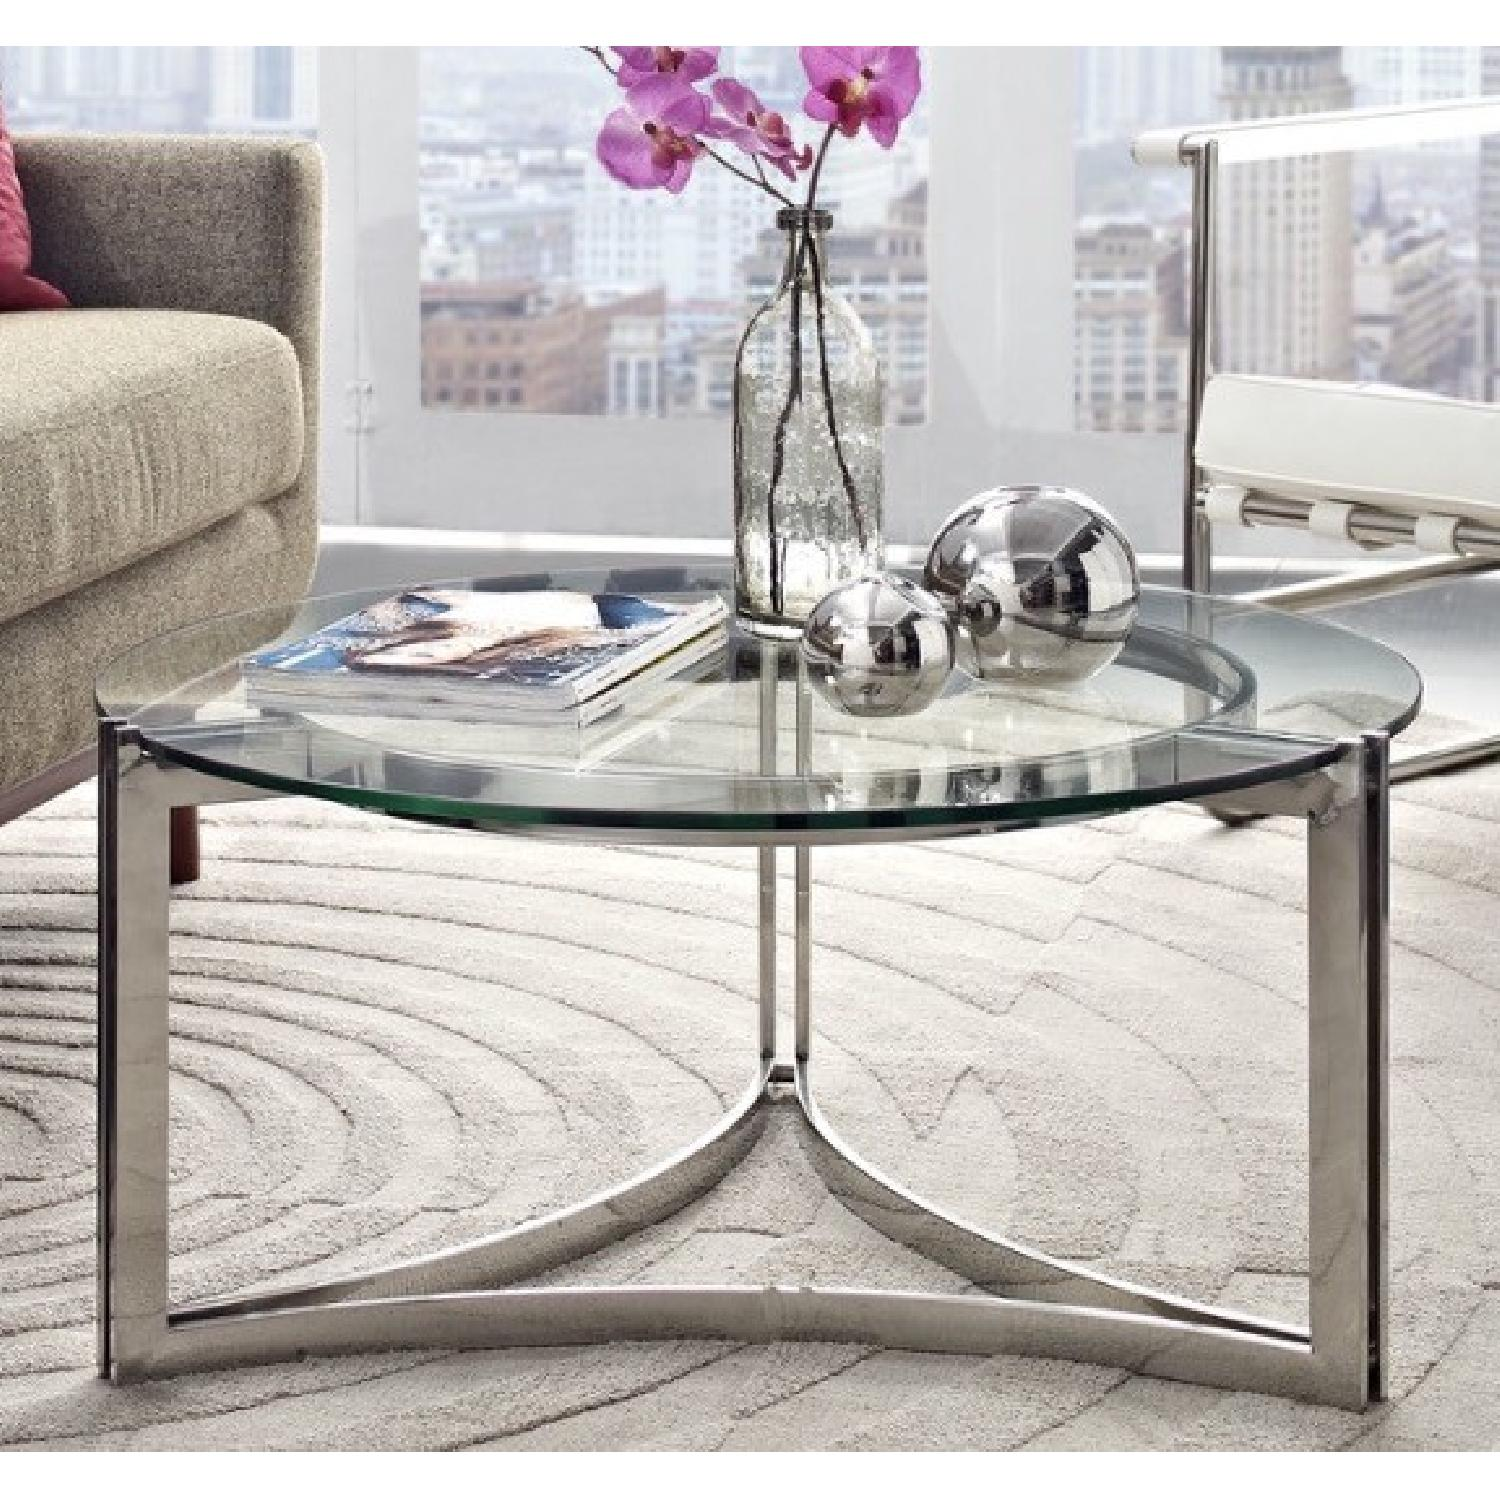 All Modern Round Glass Coffee Table